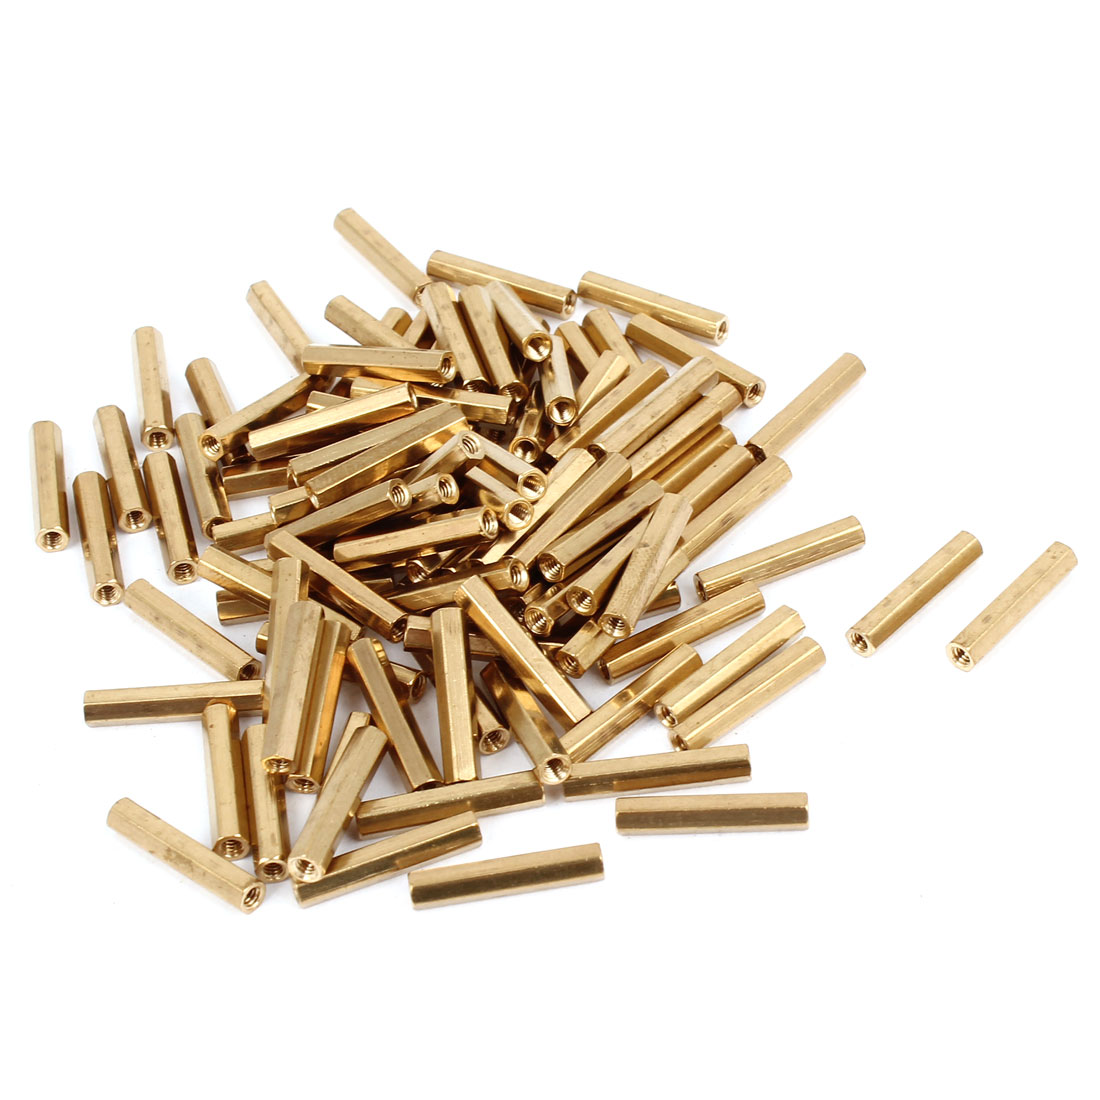 100 Pcs M2 x 16mm Gold Tone Dual Ends CCTV Camera Standoff Hexagonal Nut Spacer